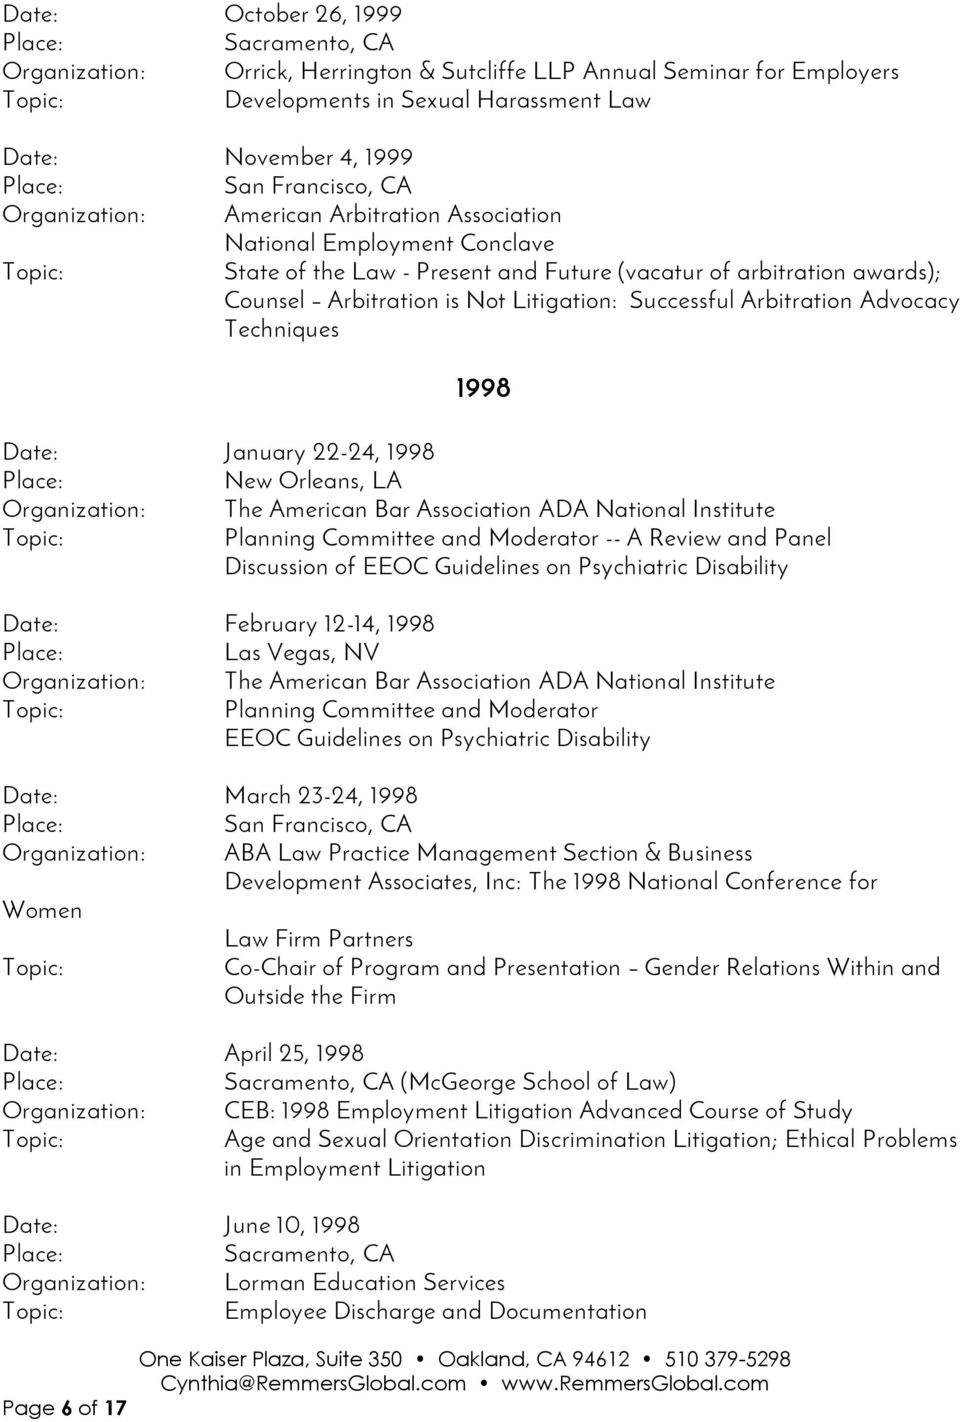 Date: January 22-24, 1998 New Orleans, LA Organization: The American Bar Association ADA National Institute Planning Committee and Moderator -- A Review and Panel Discussion of EEOC Guidelines on